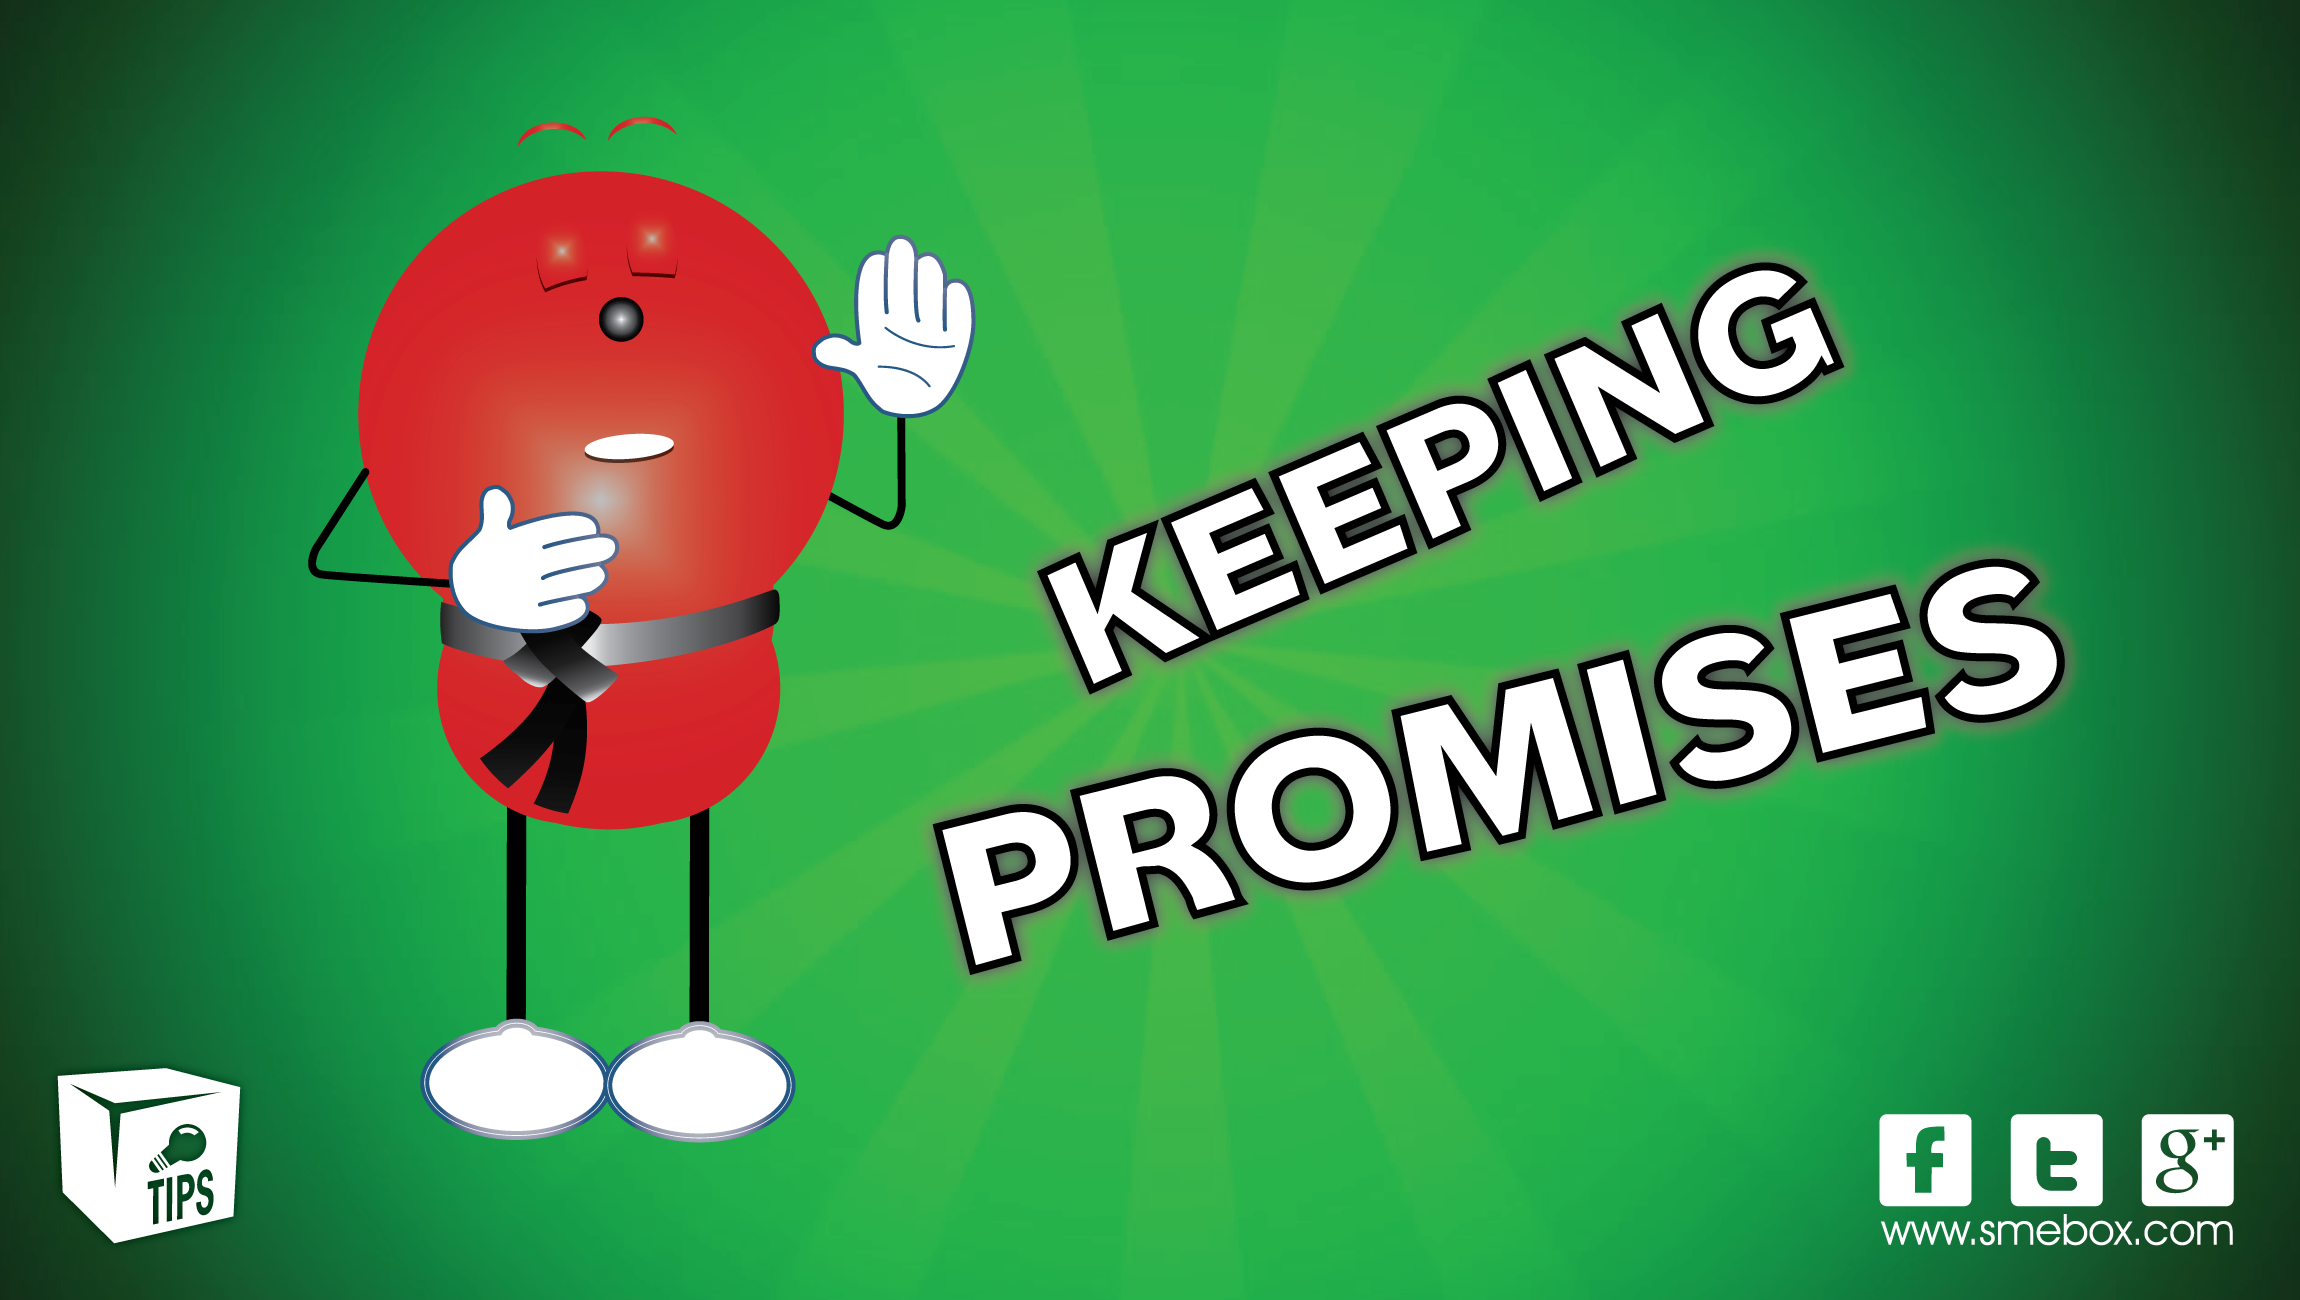 Keep your promi